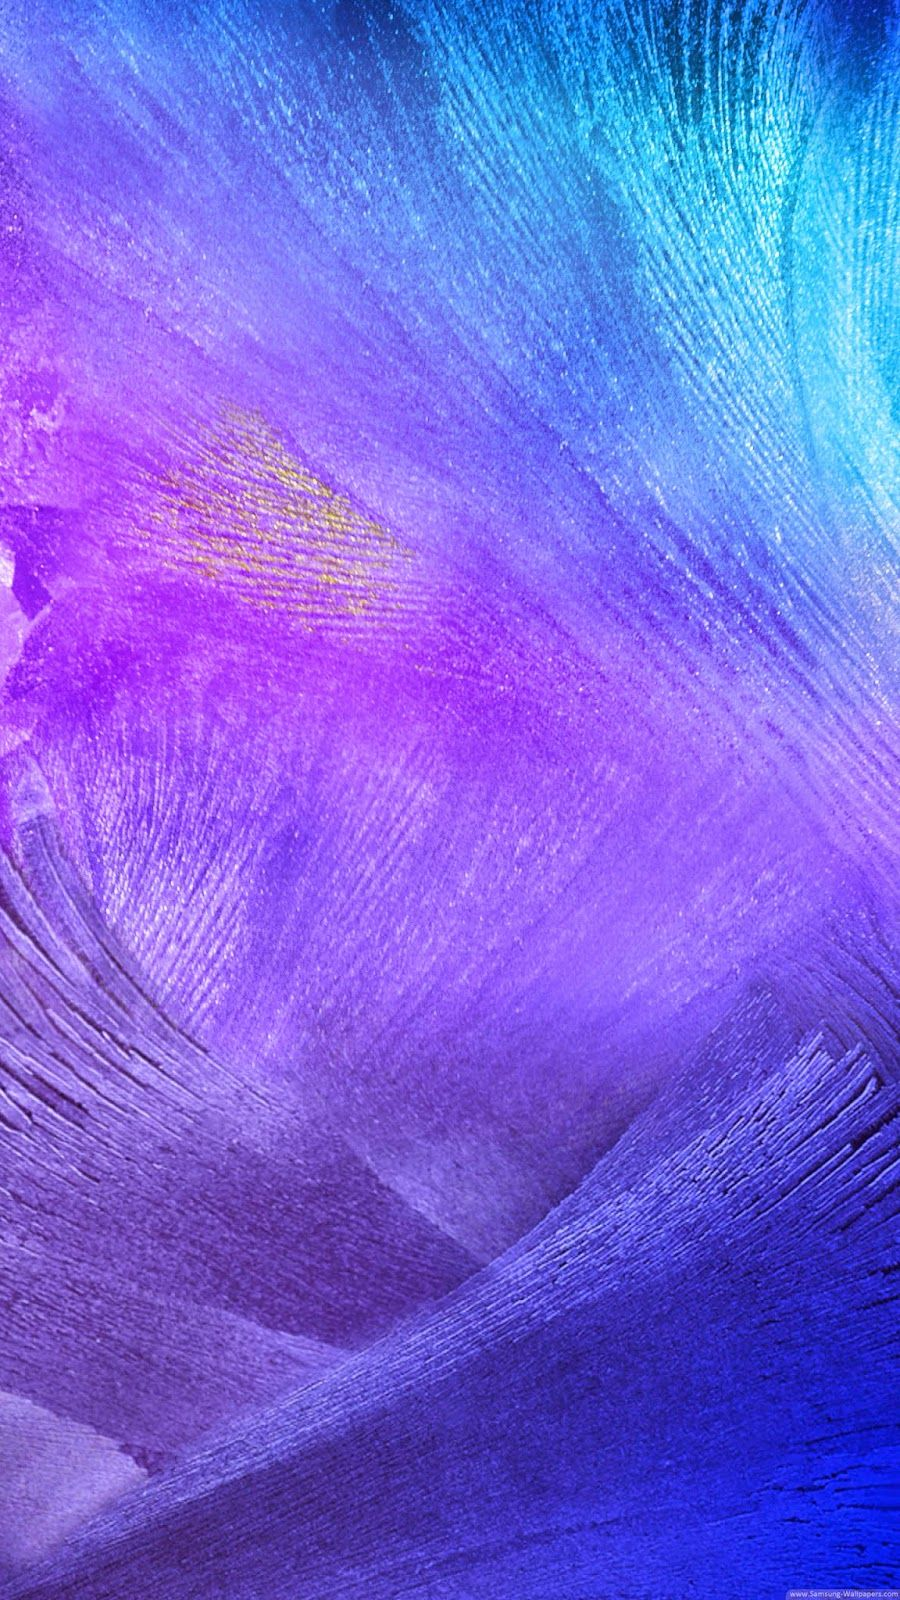 Samsung Galaxy S6 S6 Edge Hd Wallpapers Ombre Wallpaper Iphone Abstract Iphone Wallpaper Samsung Wallpaper